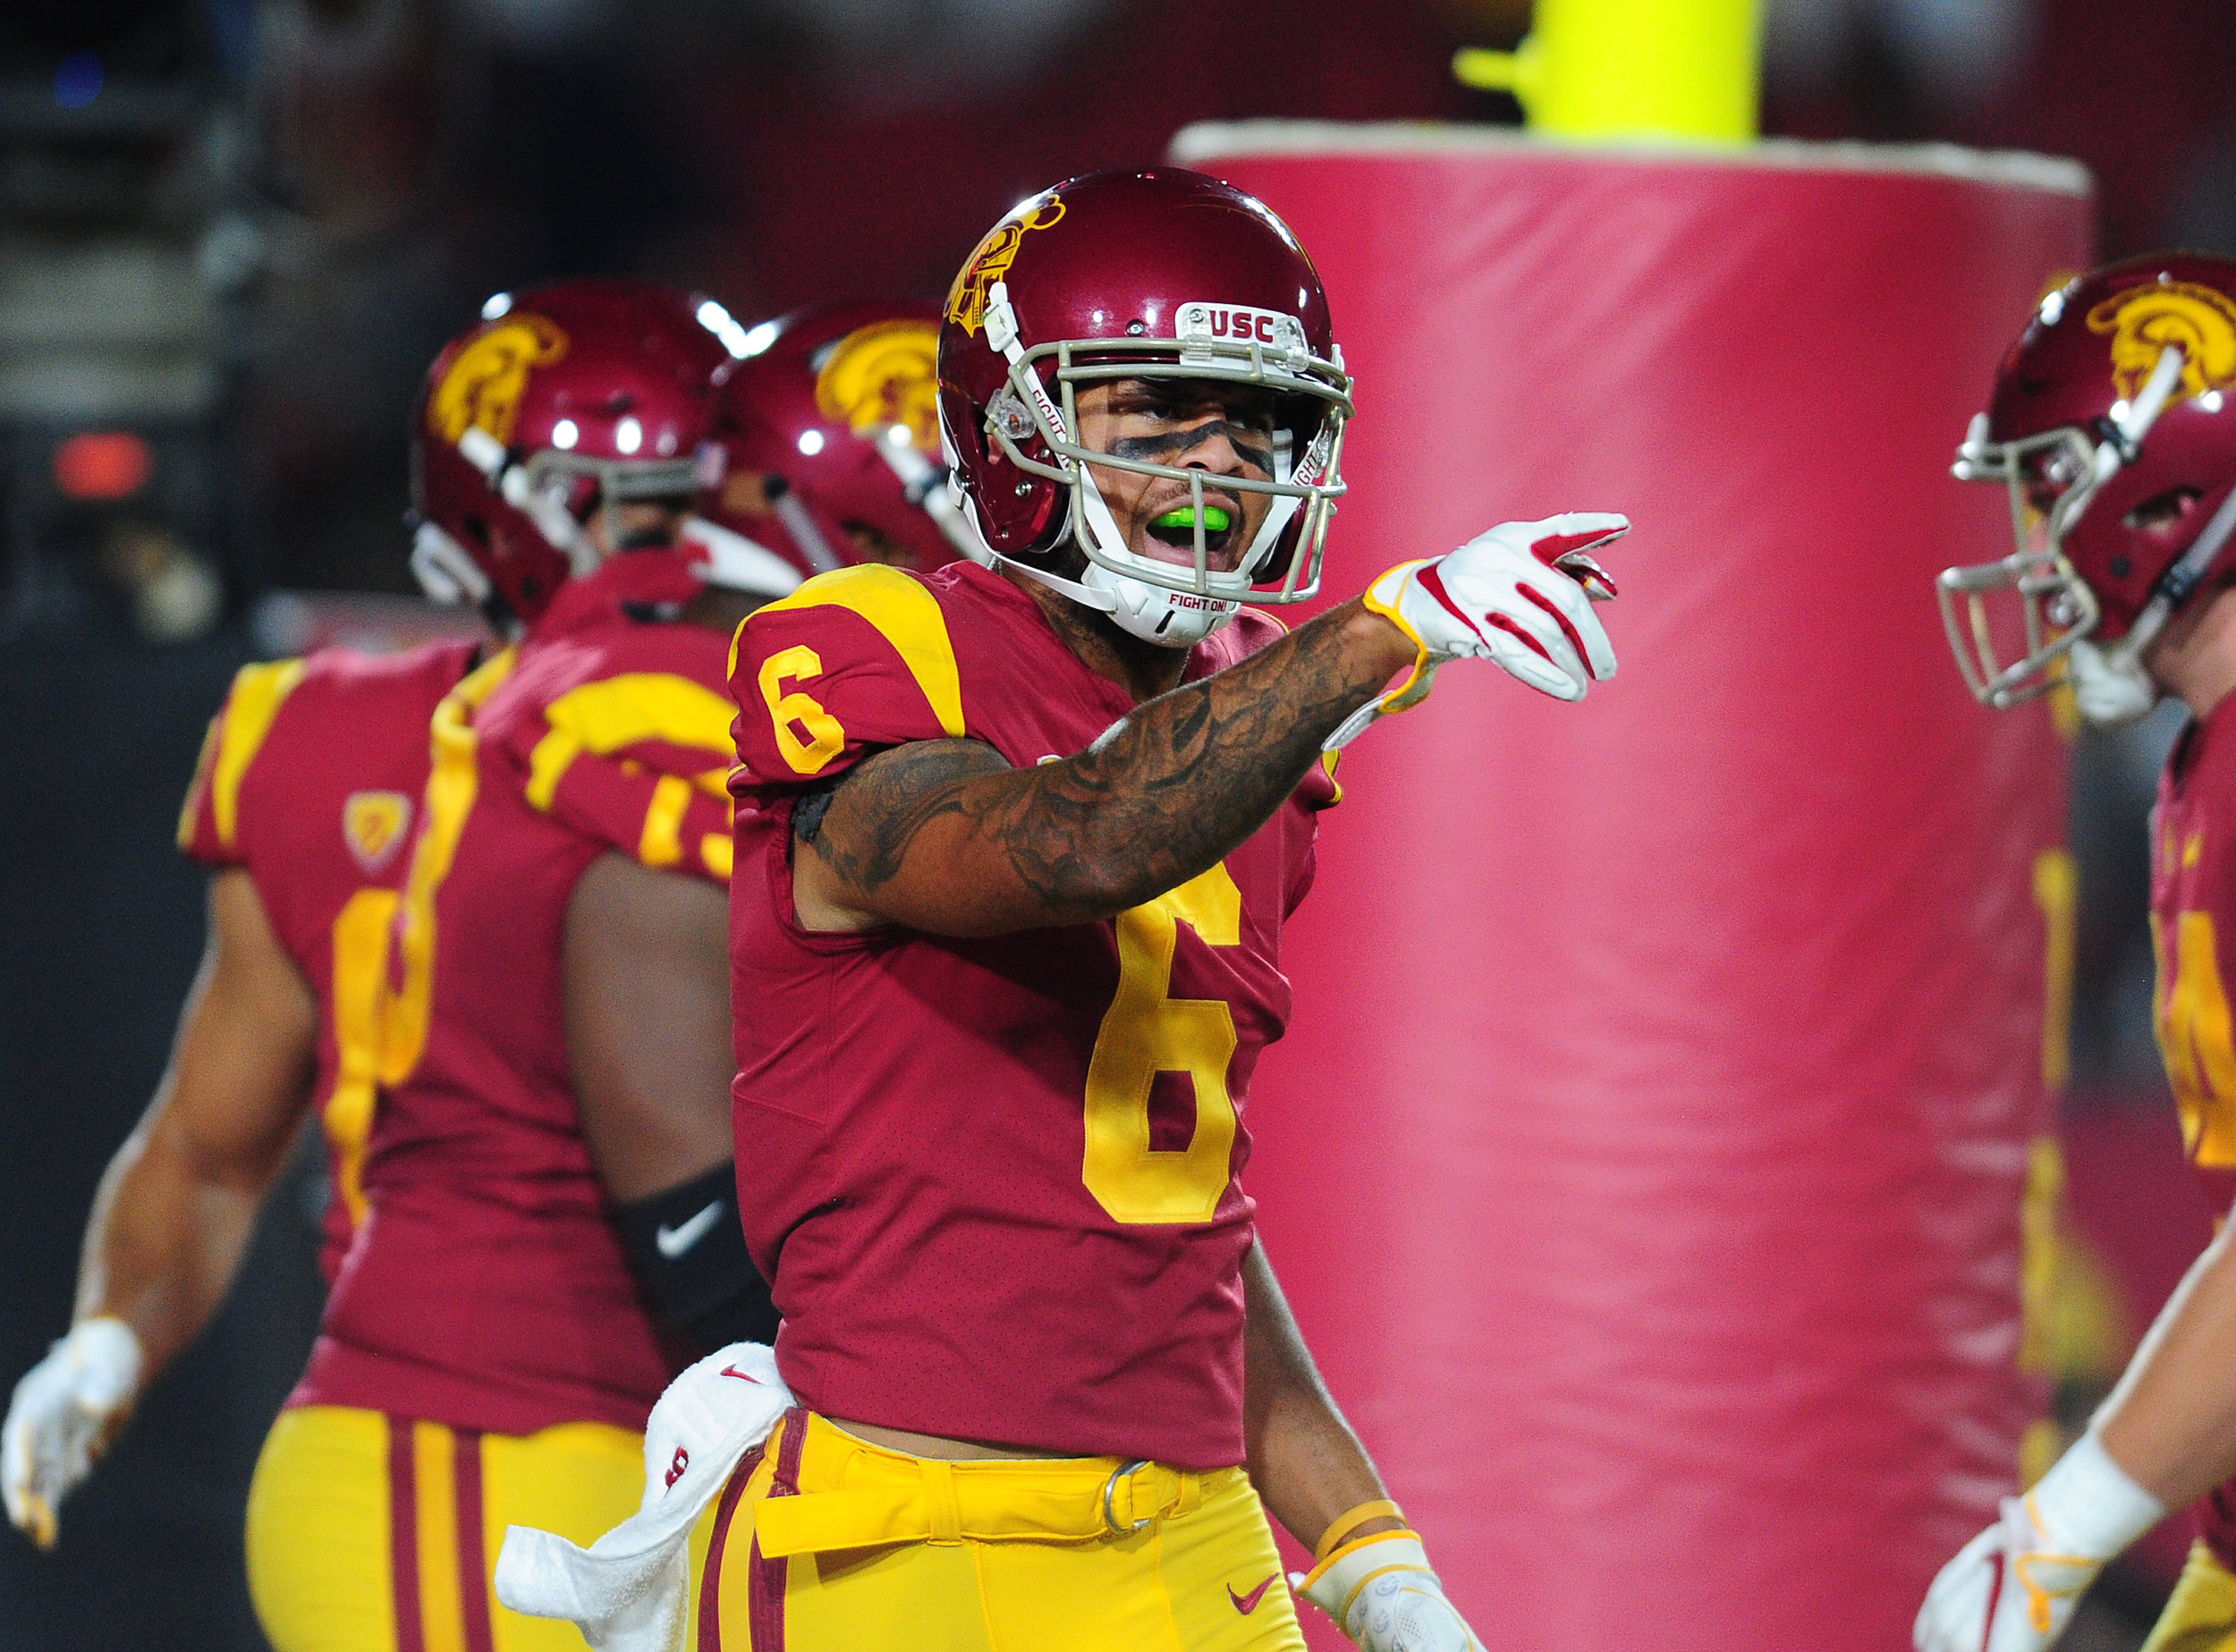 Pittman 180921 Washington State vs USC Game Action MarinMedia 15 JLM.JPG